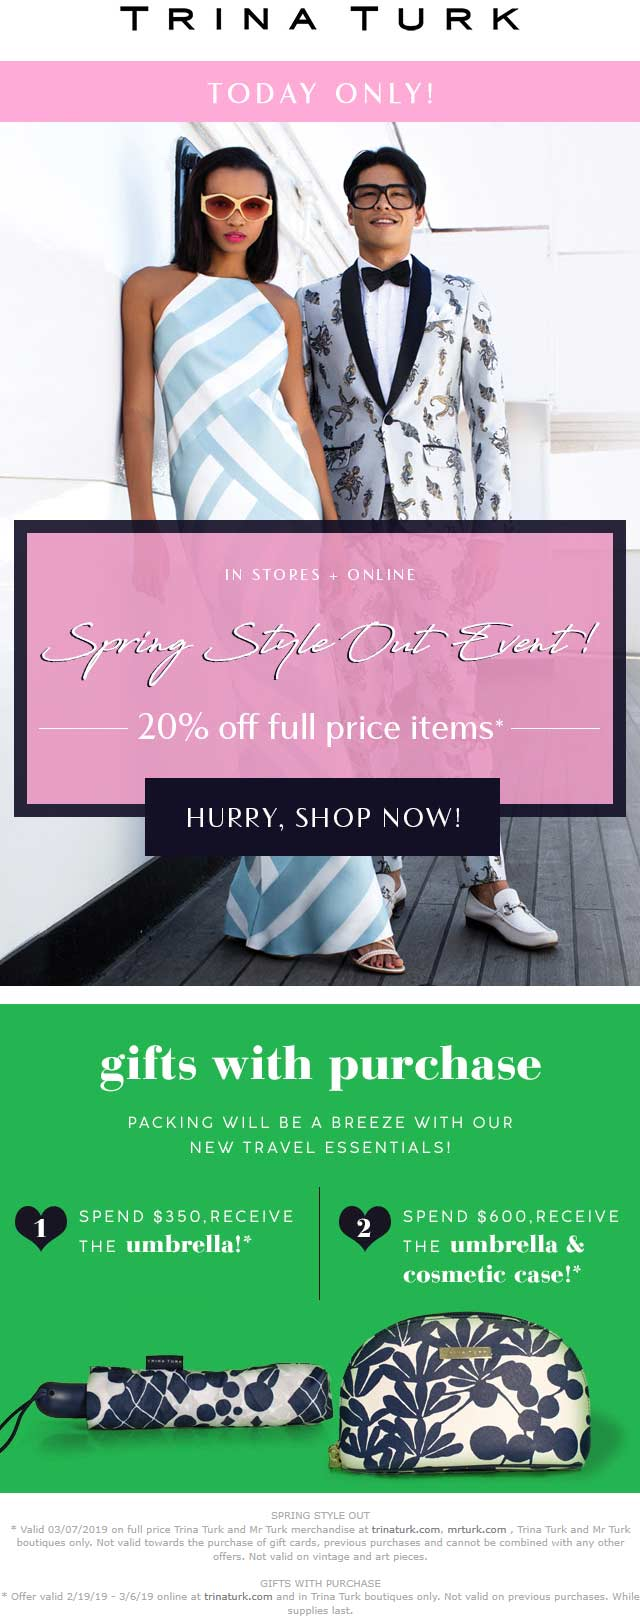 Trina Turk Coupon February 2020 20% off today at Trina Turk, ditto online